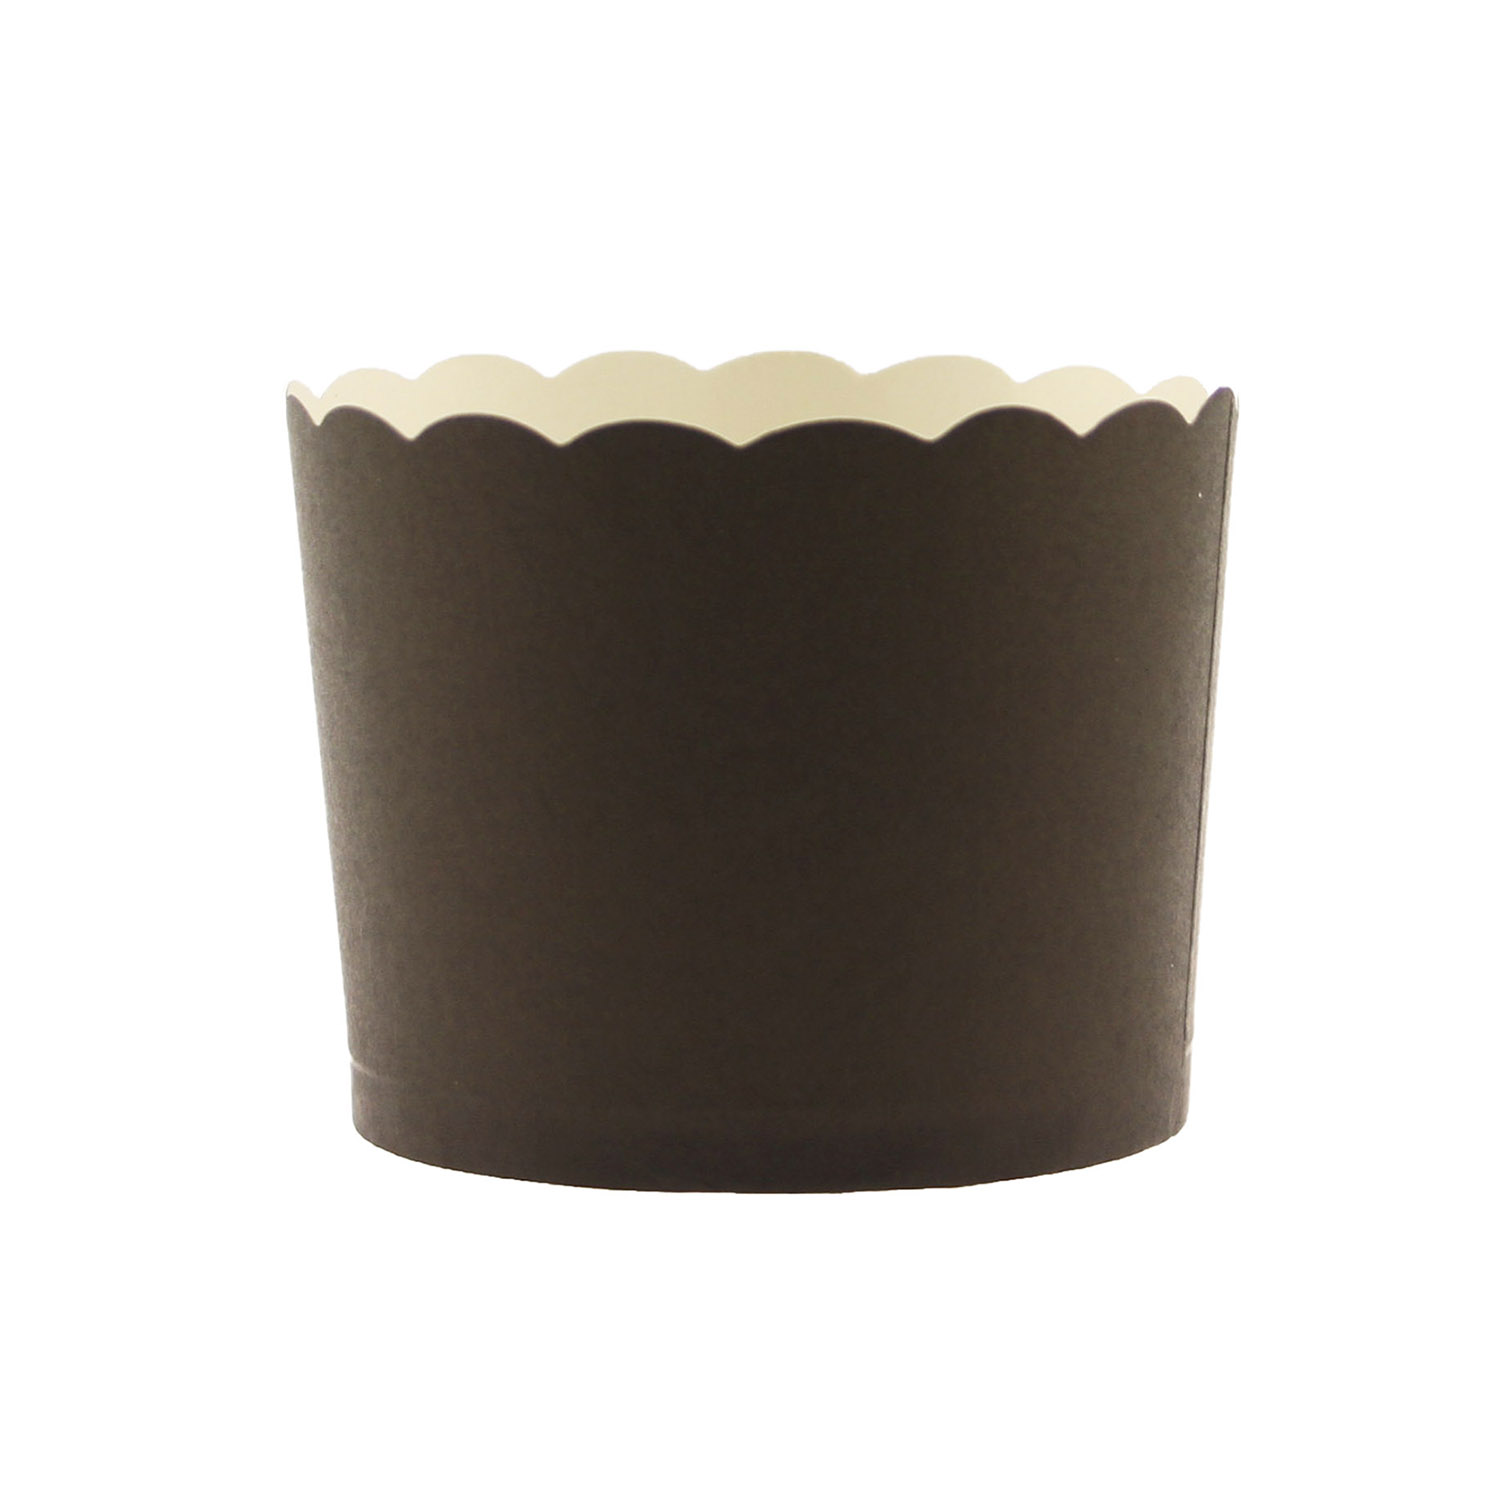 Black Bake In Cups - Small